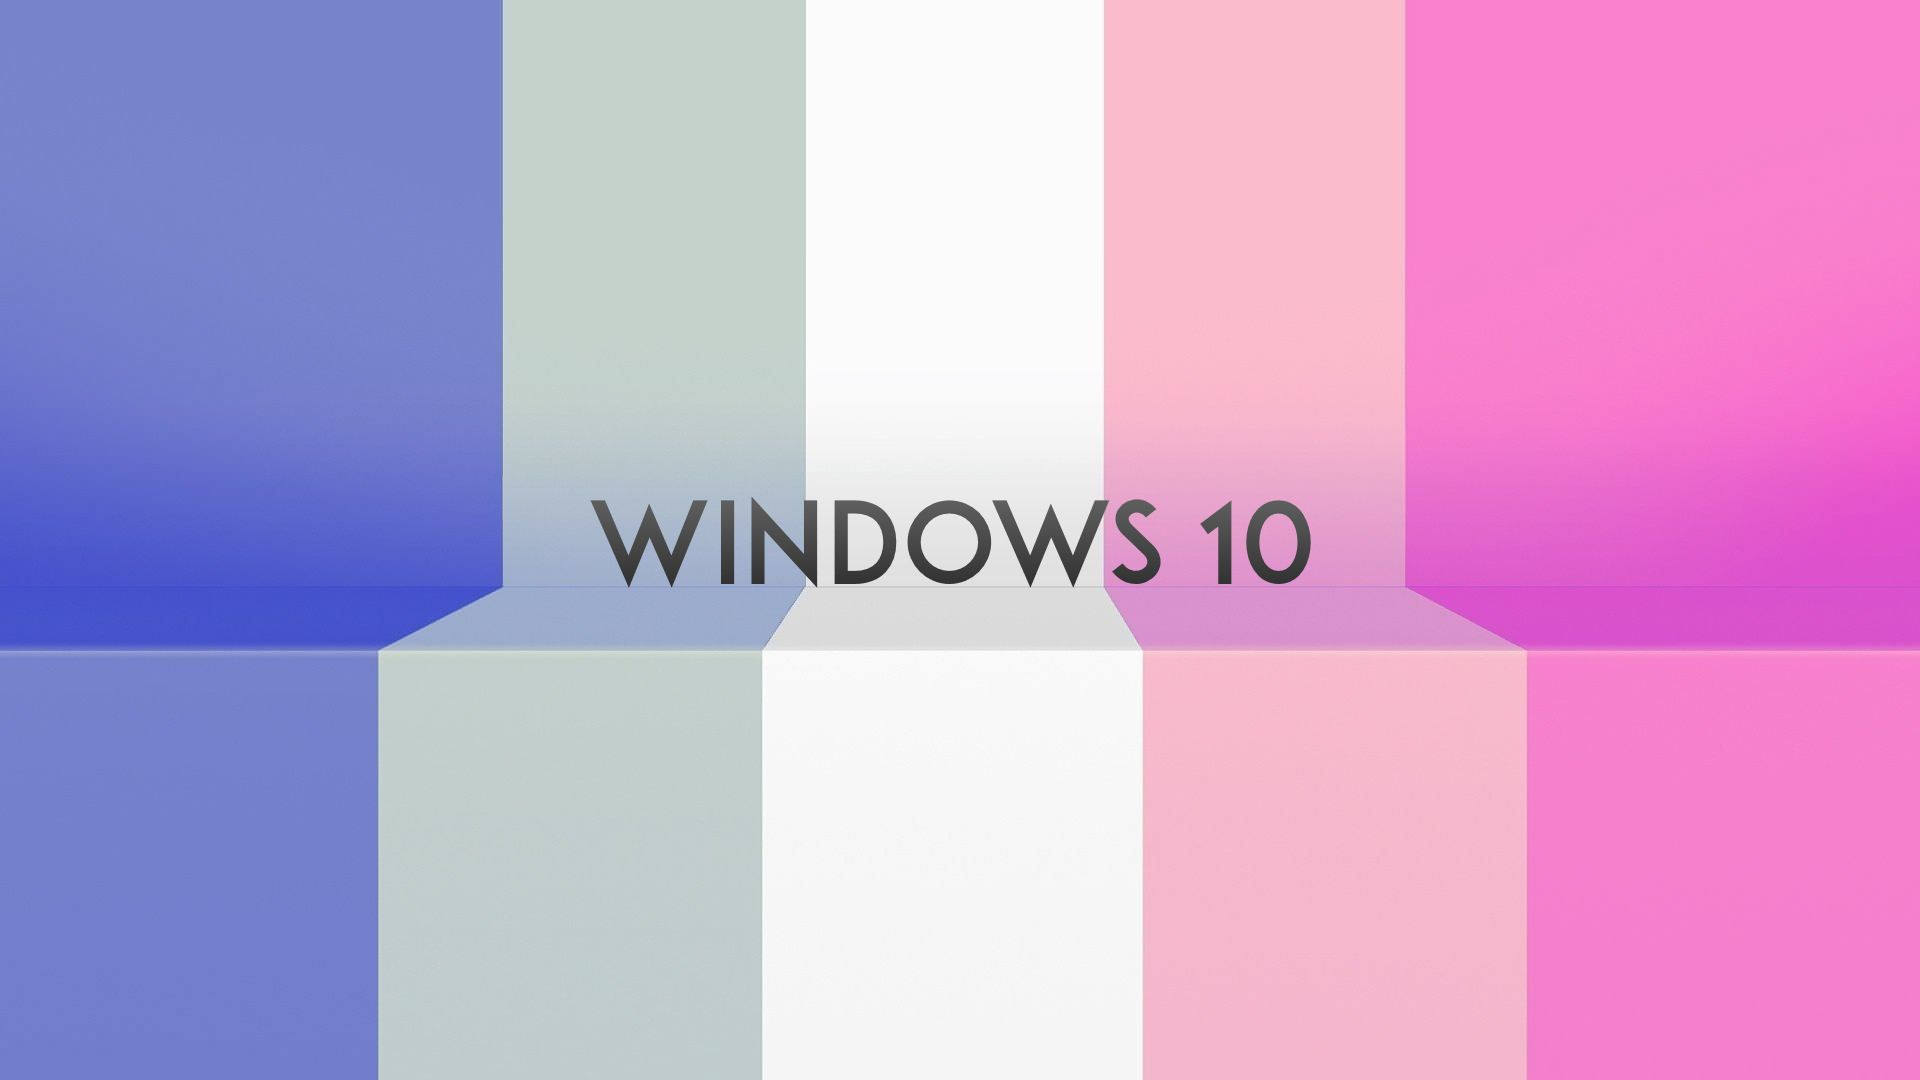 new windows wallpaper colorful - photo #16